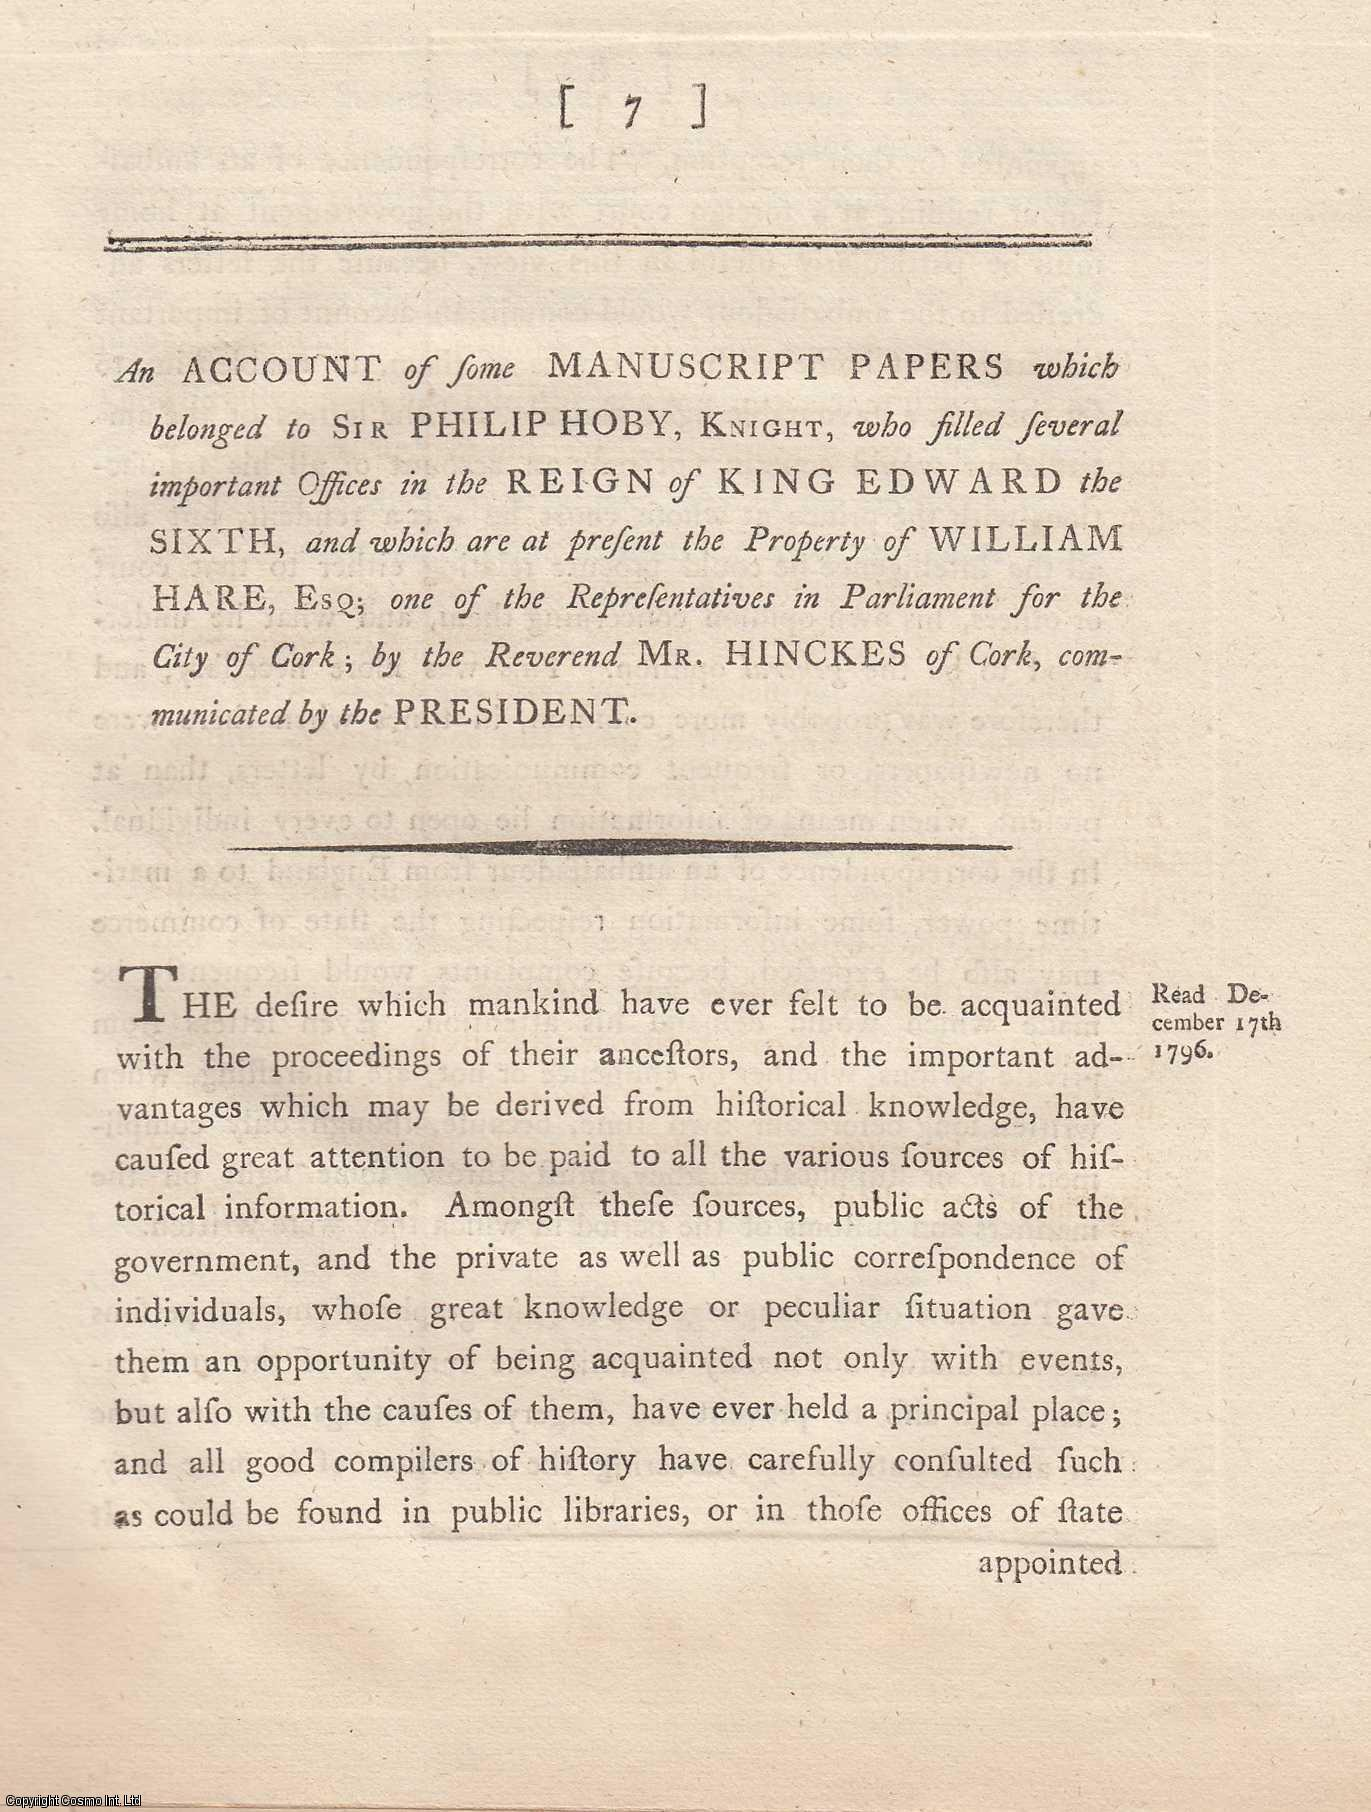 An Account of some Manuscript Papers which belonged to Sir Philip Hoby, who filled several important Offices in the Reign of King Edward VI, and which are at present the Property of Wm. Hare.  From Transactions of the Royal Irish Academy., Hinckes, Mr.